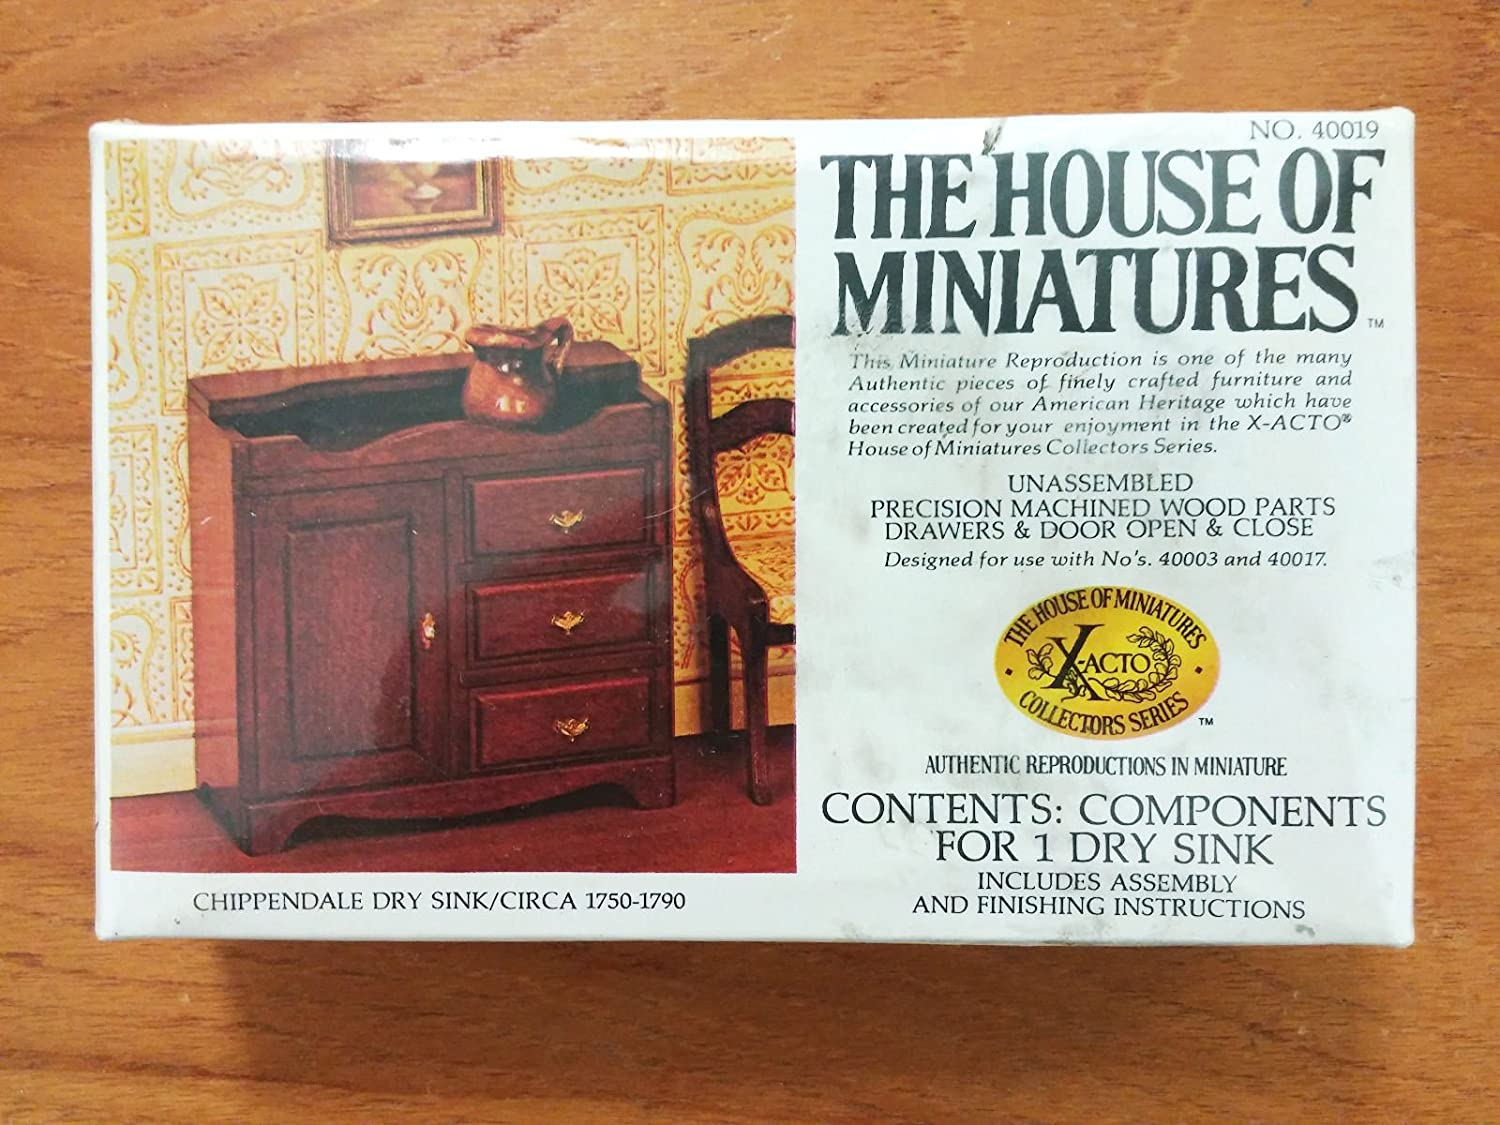 Dollhouse Furniture- Chippendale Dry Sink Circa 1750-1790 #40019 Assembled (The House of Miniatures)